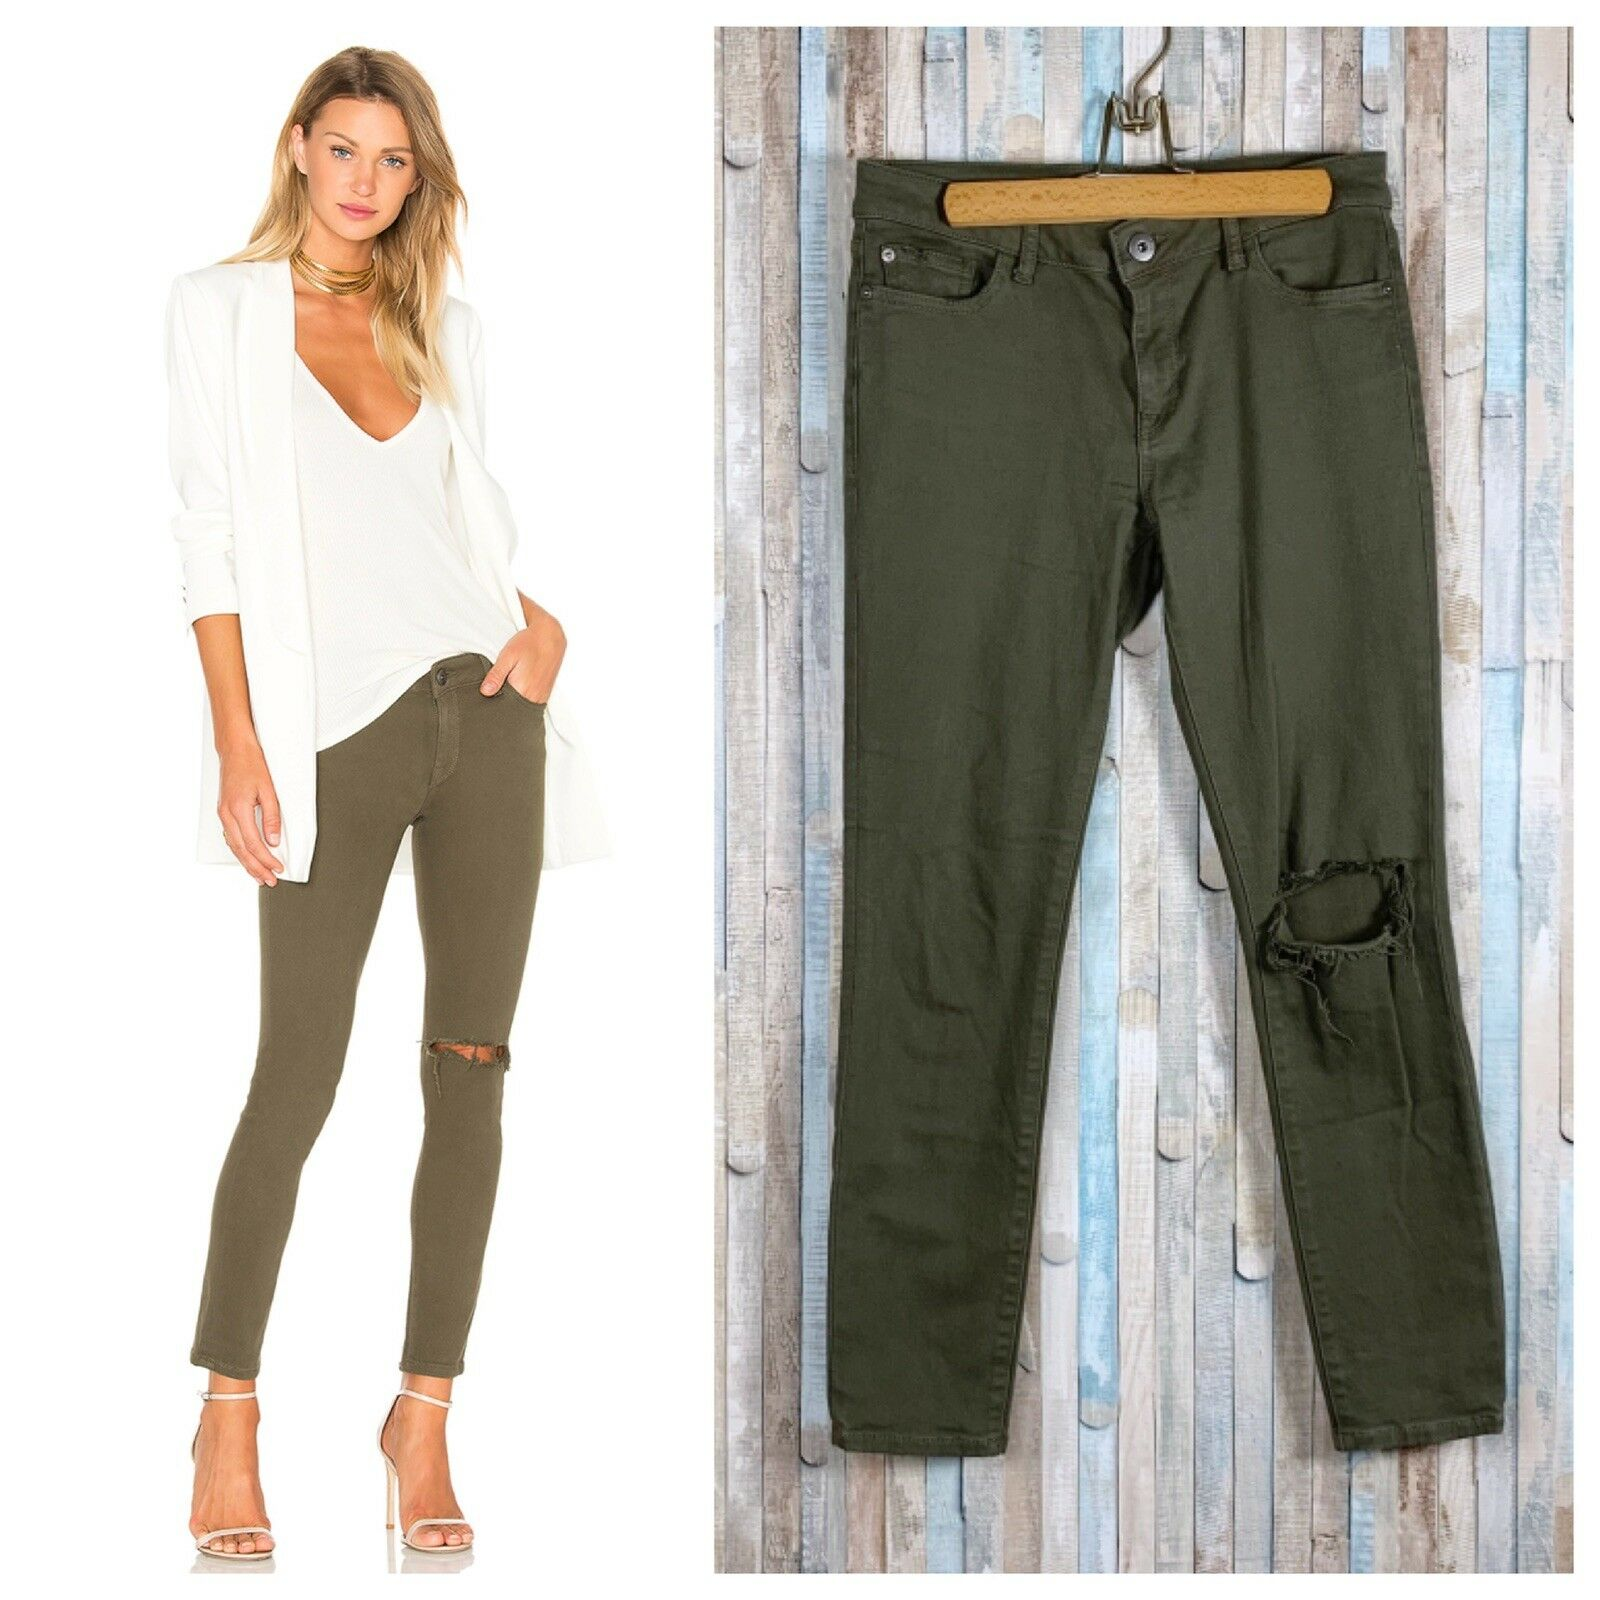 DL1961 28 Basin Olive Wash Skinny Stretch Ripped Margaux Instasculpt Jeans